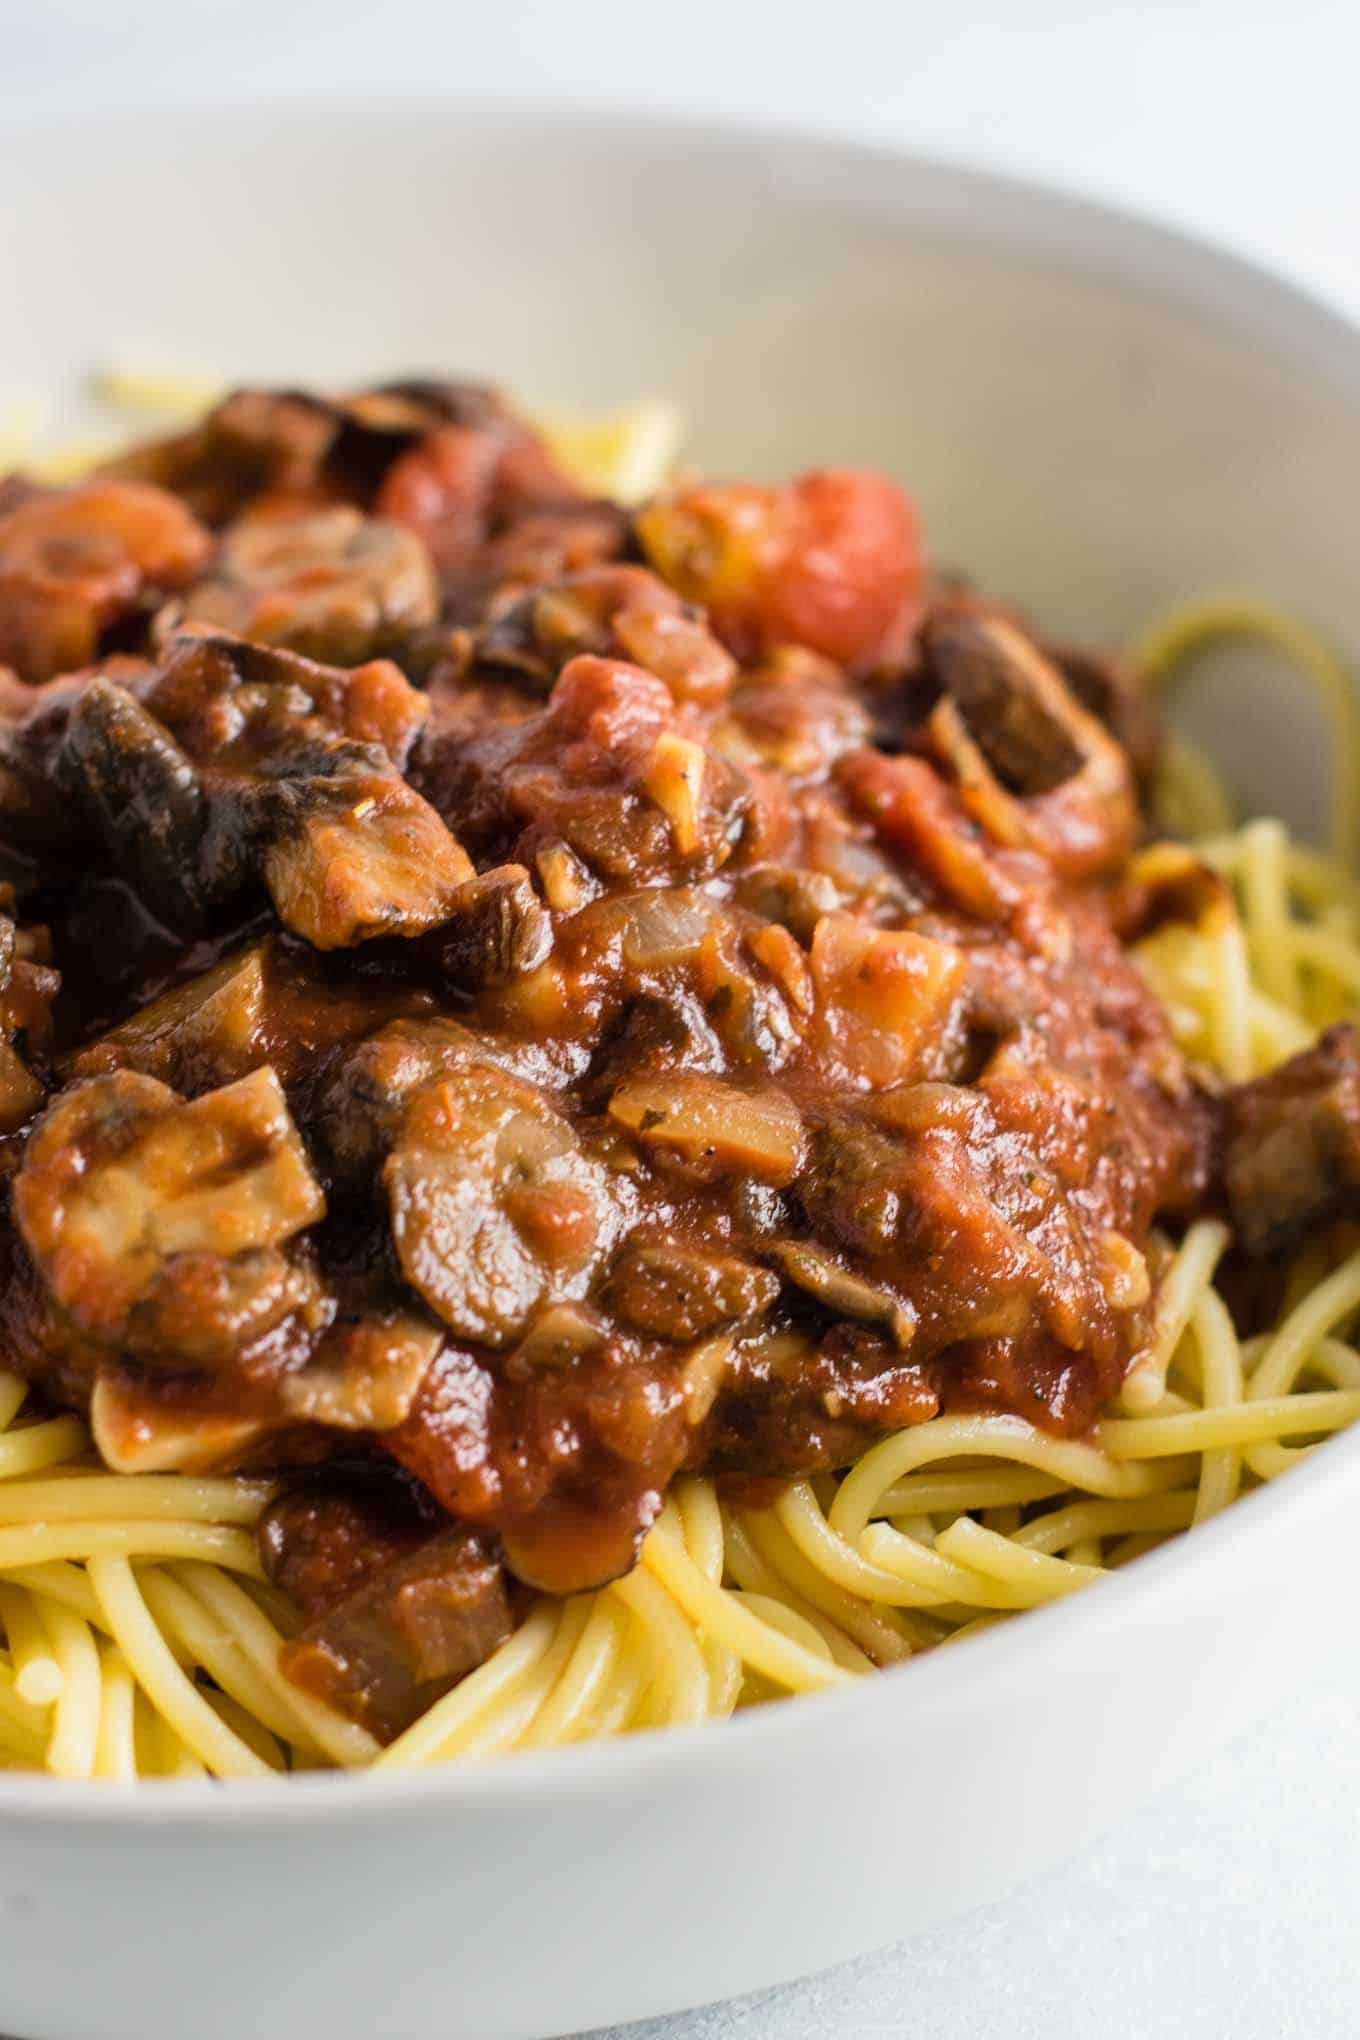 Vegetarian Sauces Recipes  Easy Meatless Spaghetti Sauce Recipe Build Your Bite